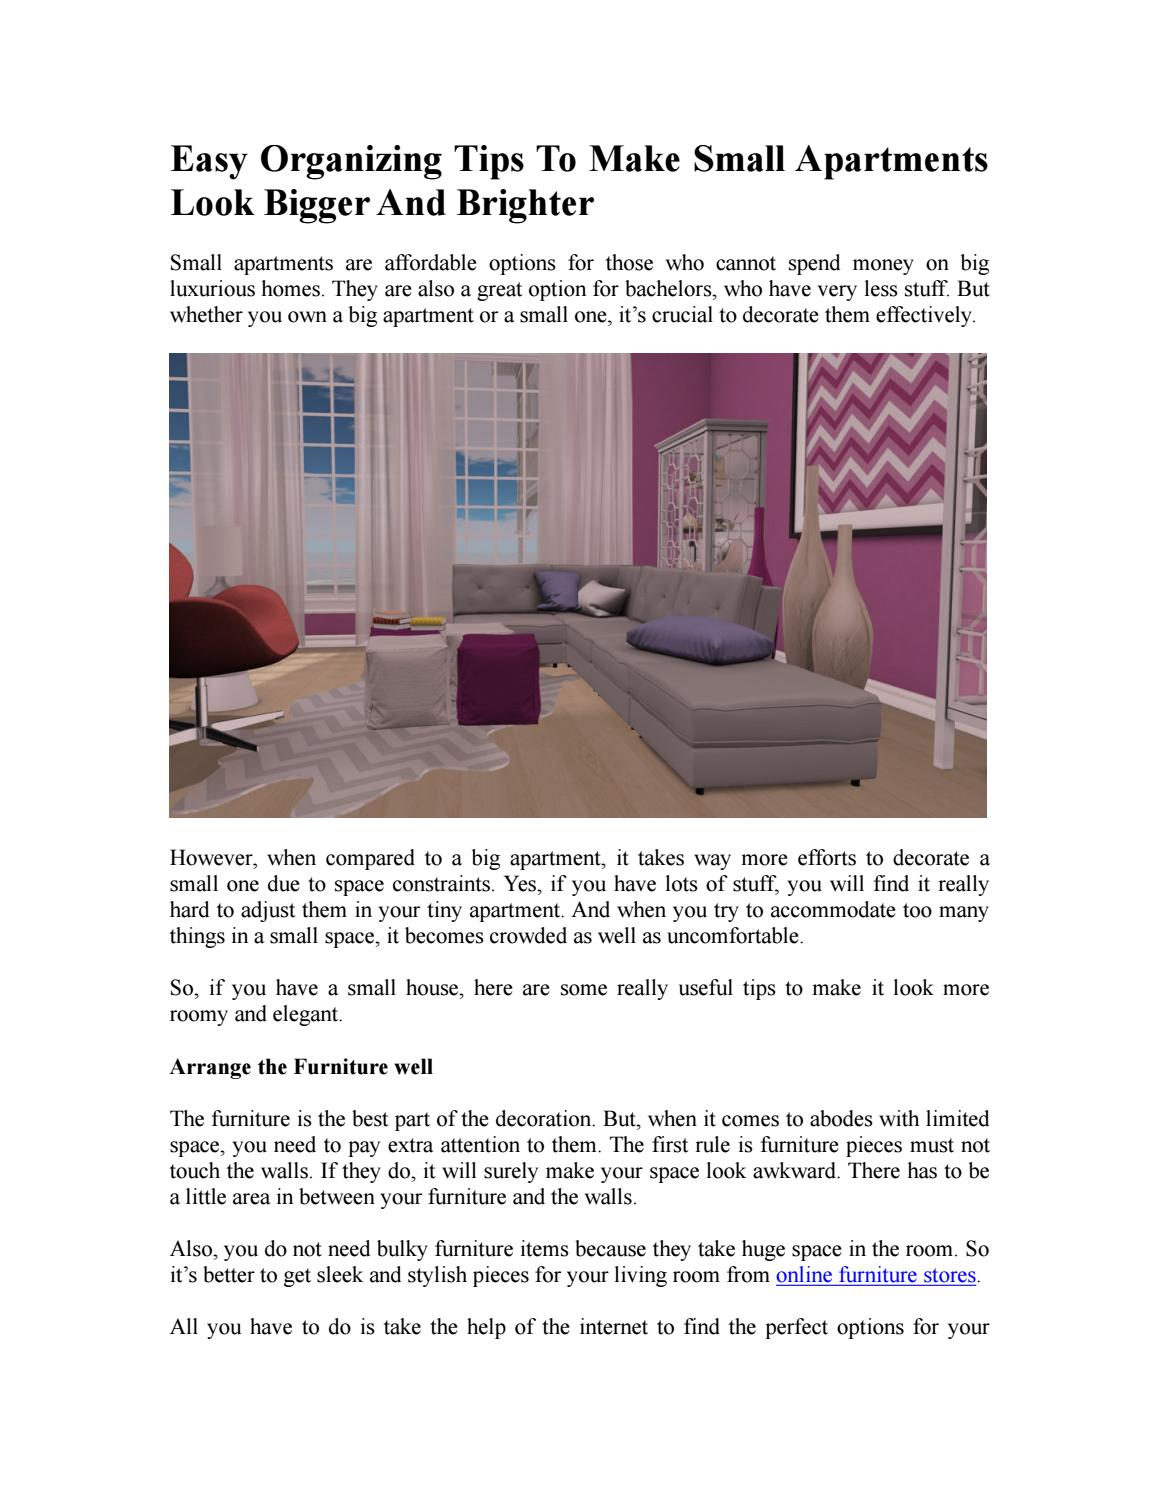 Easy organizing tips to make small apartments look bigger ...